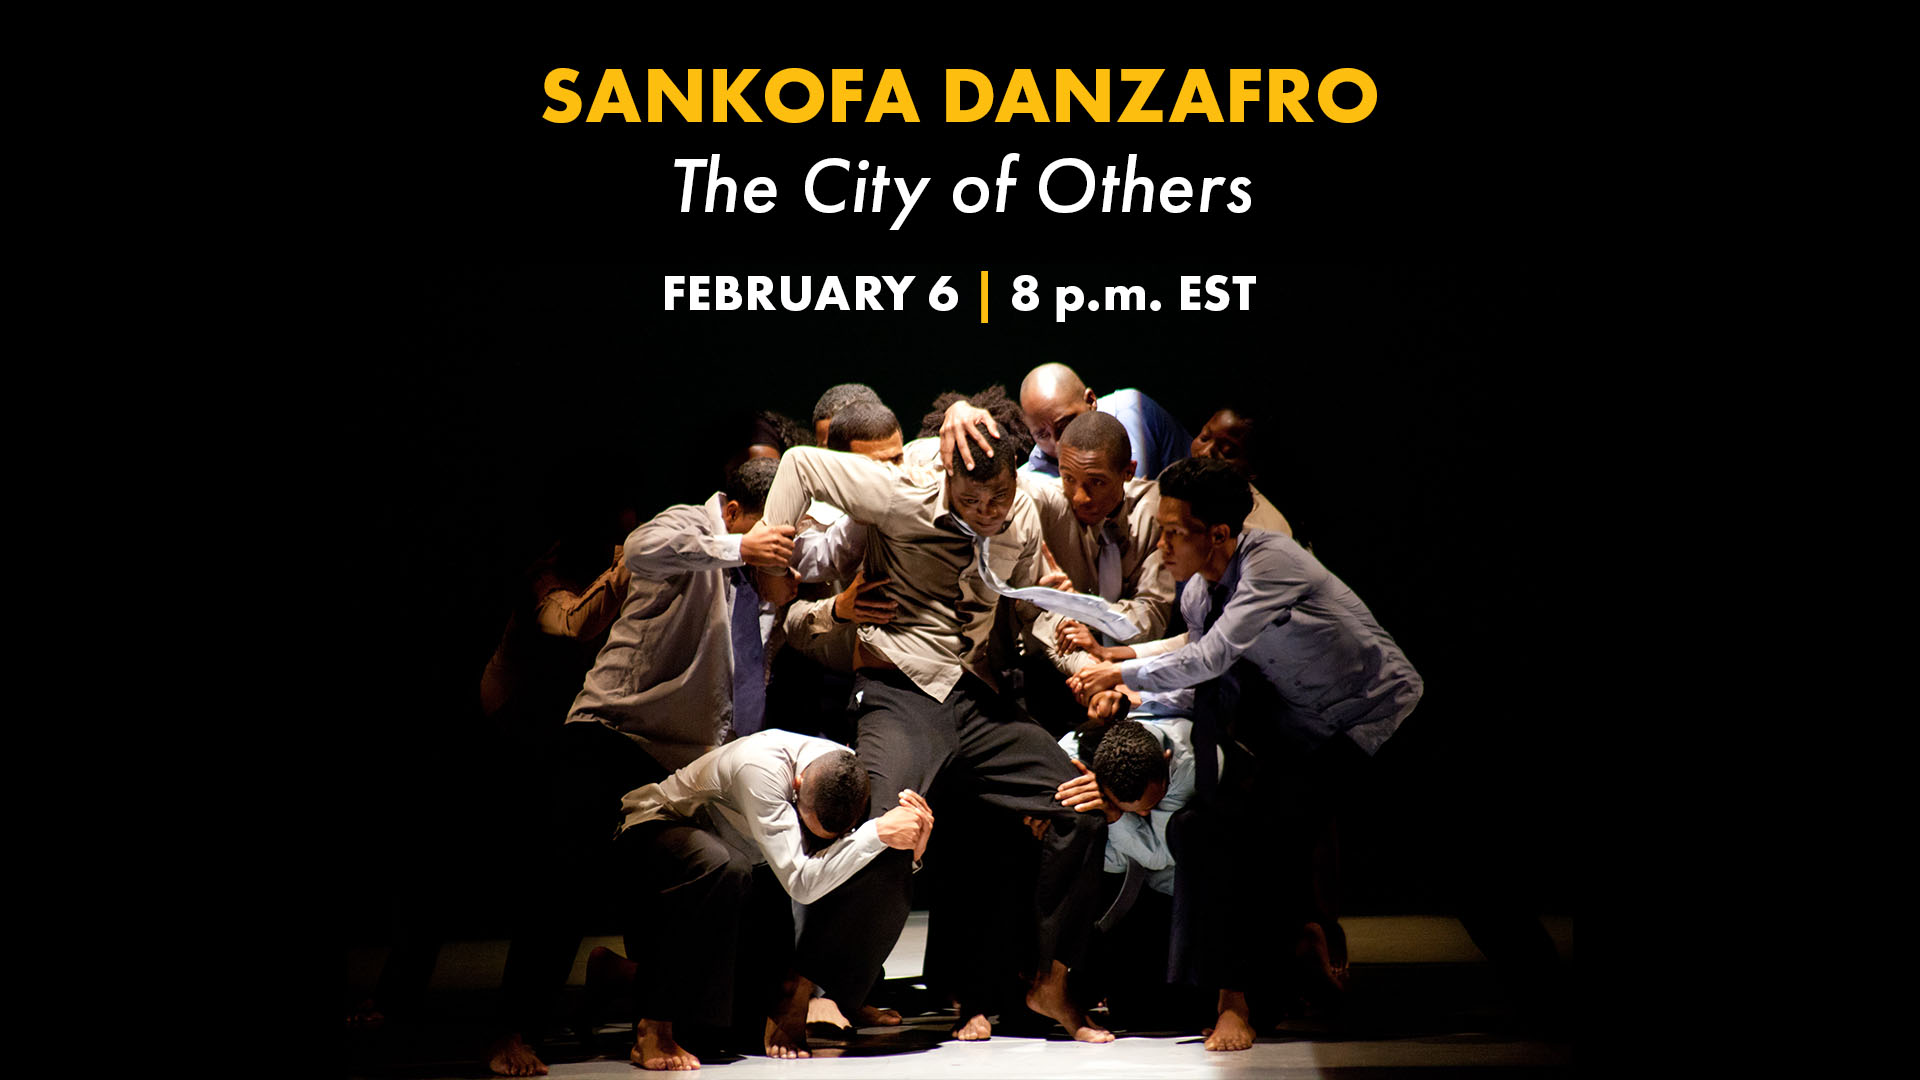 Sankofa Danzafro: The City of Others